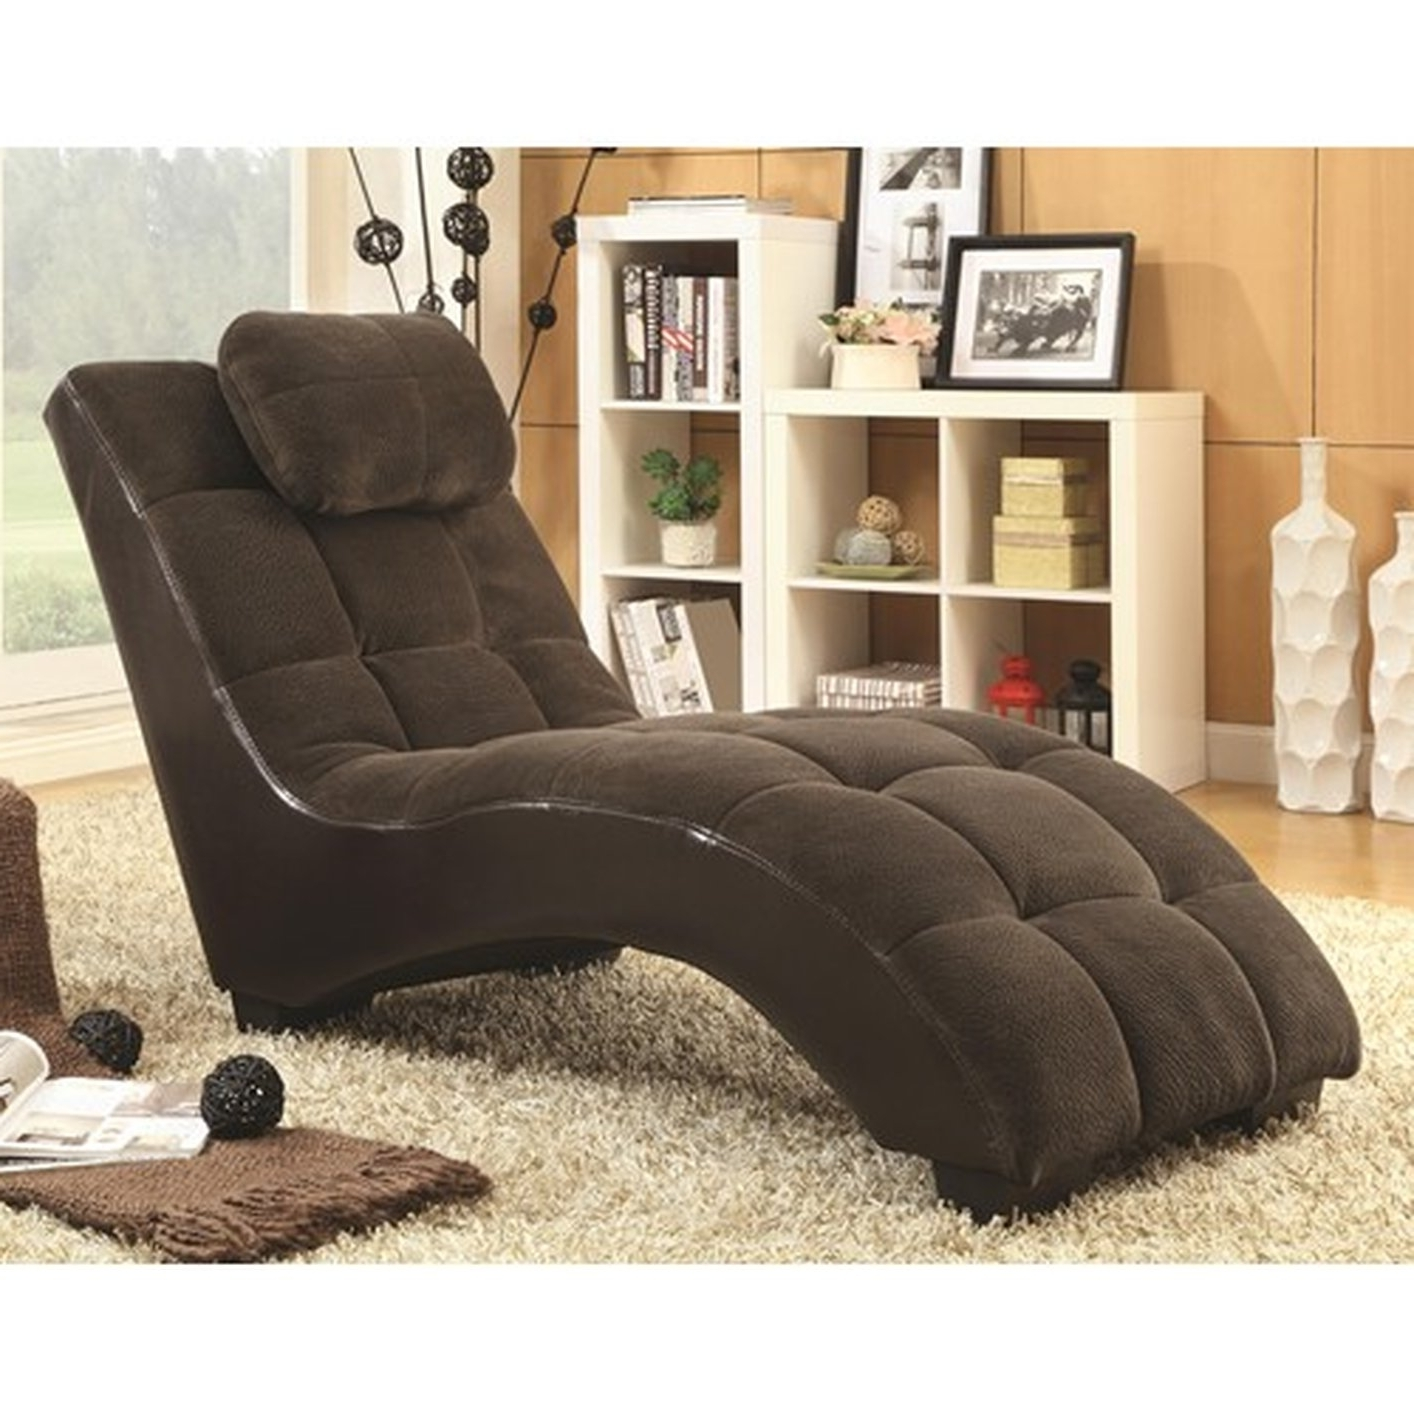 Well Known Fabric Chaise Lounges Pertaining To Brown Fabric Chaise Lounge – Steal A Sofa Furniture Outlet Los (View 14 of 15)